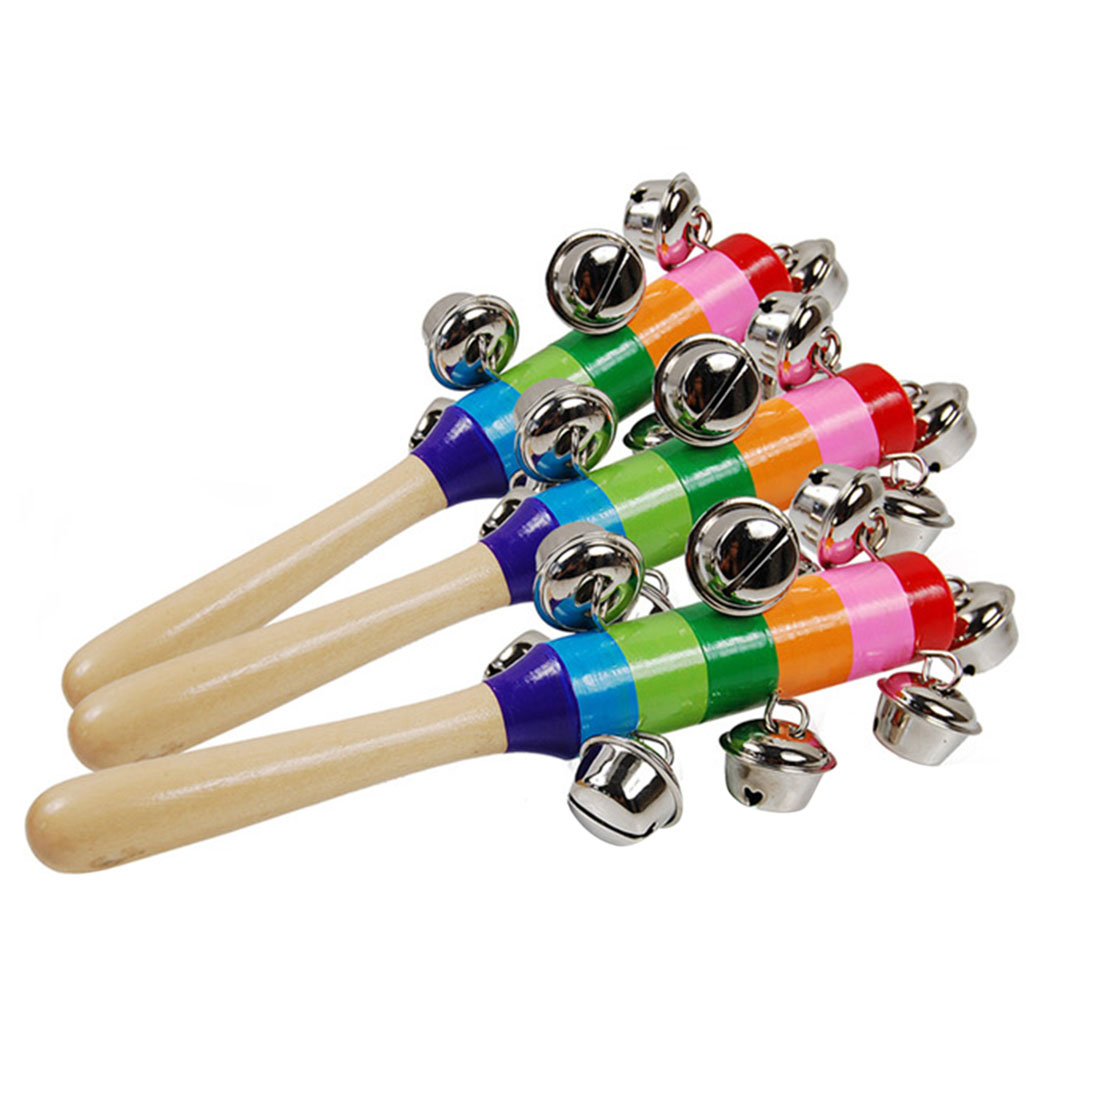 Hand Shake Jingle Bells Rainbow Wooden Stick Bell Rattles Baby Kids Musical Instrument Toys - Random Delivery